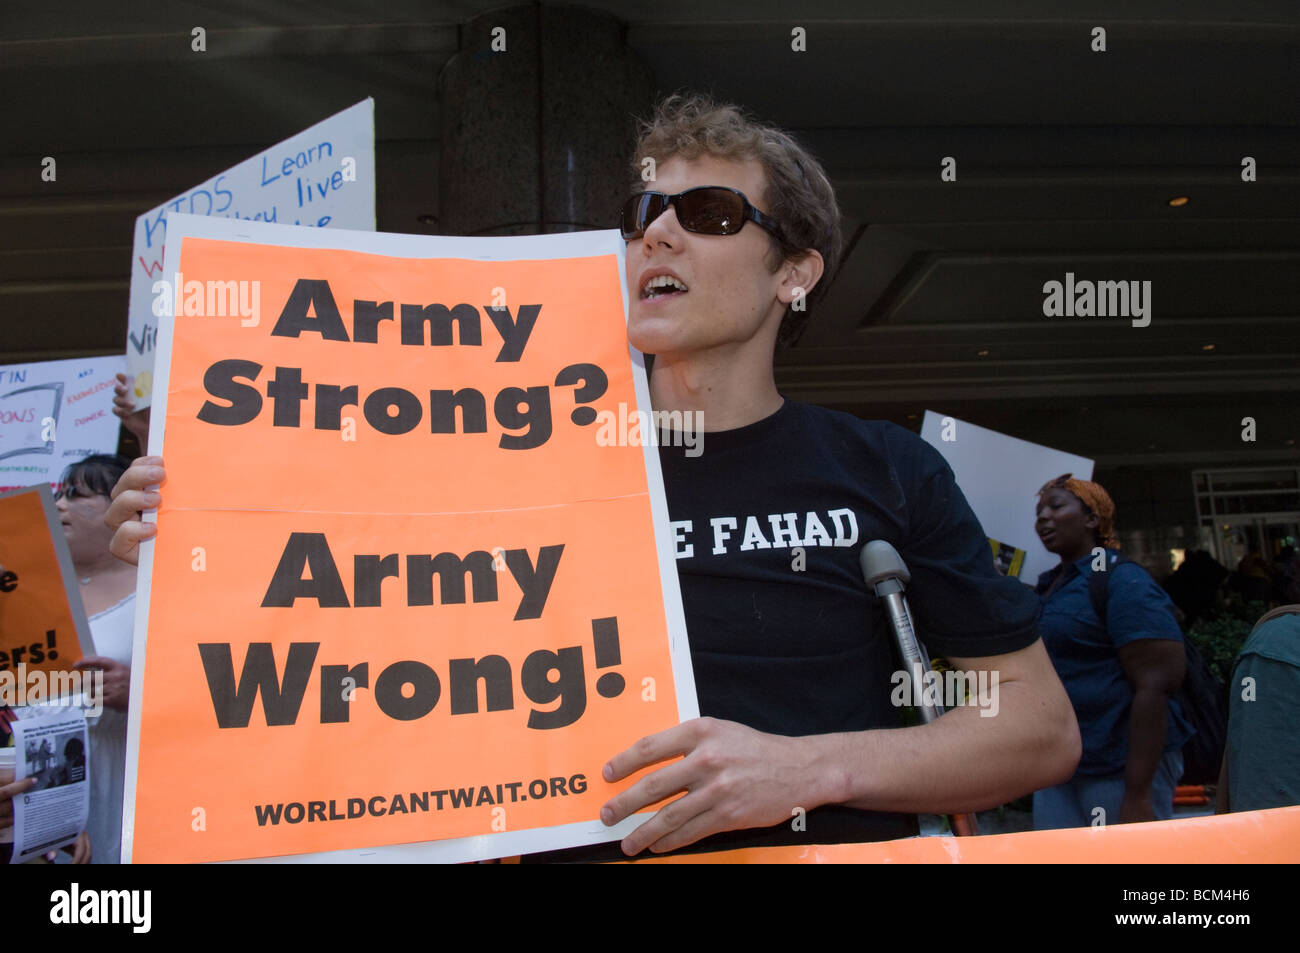 Demonstrators protest the inclusion of Army Strong recruiters outside the NAACP Diversity Job Fair in New York - Stock Image